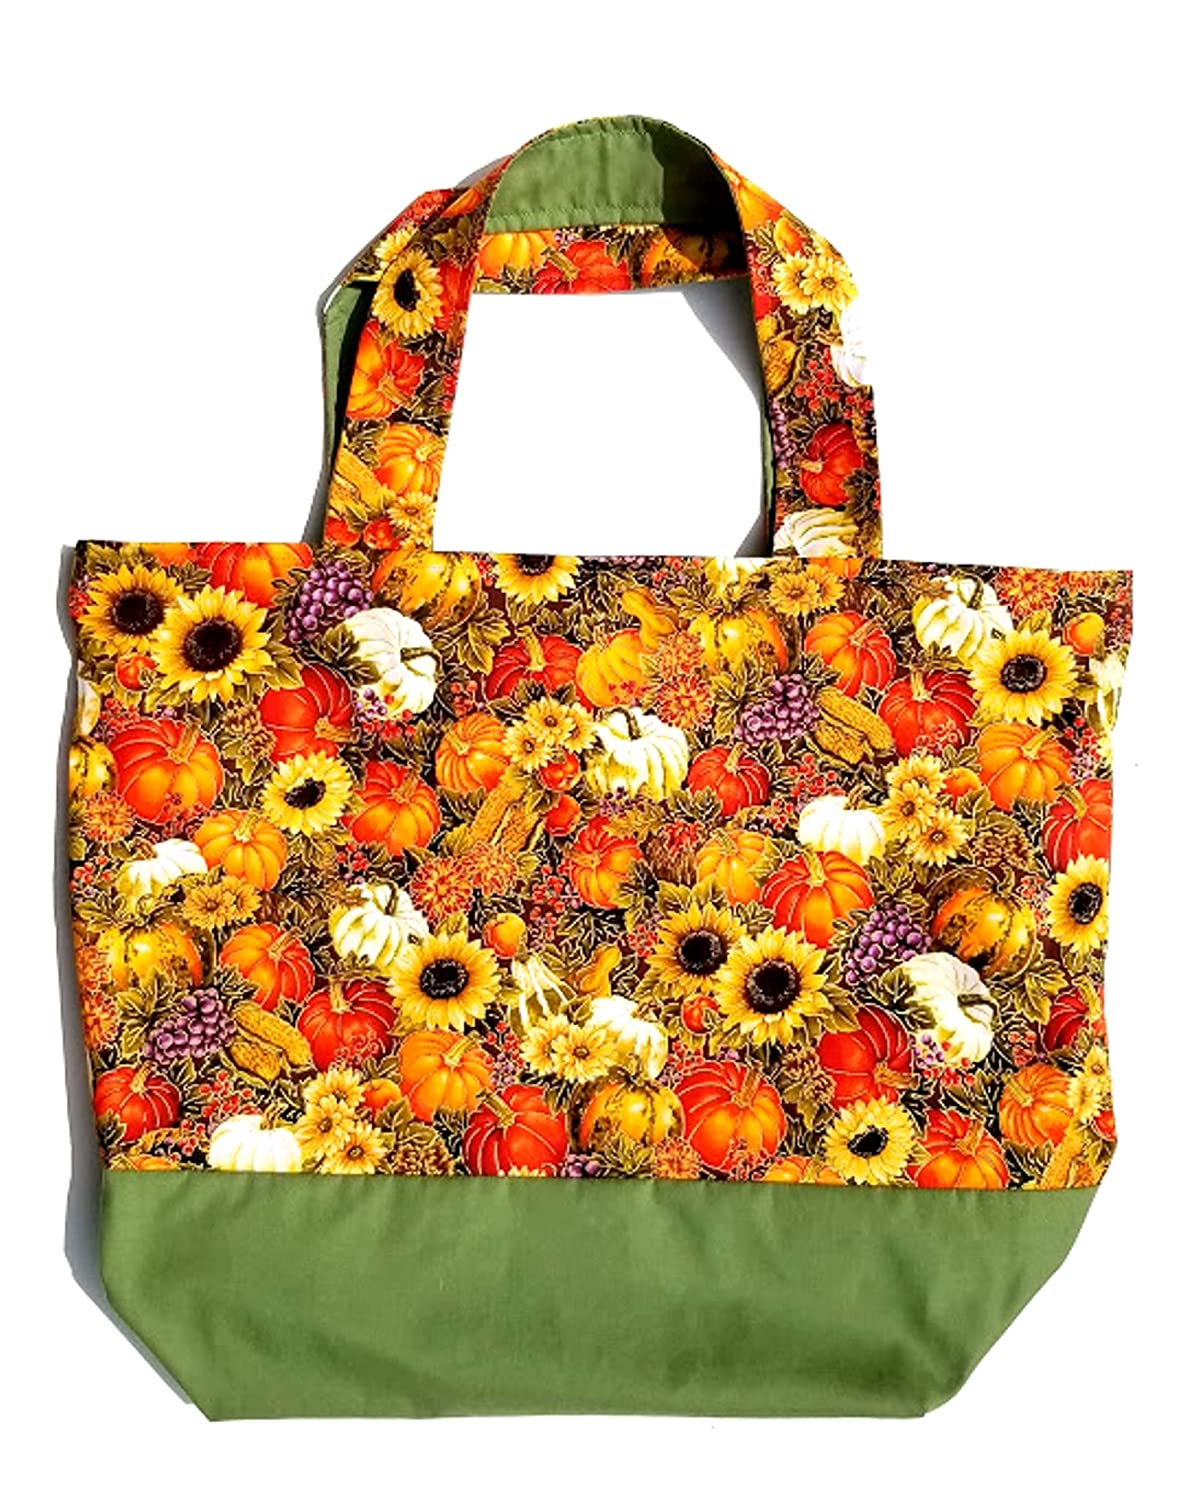 Ranking TOP3 Super-cheap Hand Crafted Tote Bag-Goldleaf Pumpkins Sunflower Corn